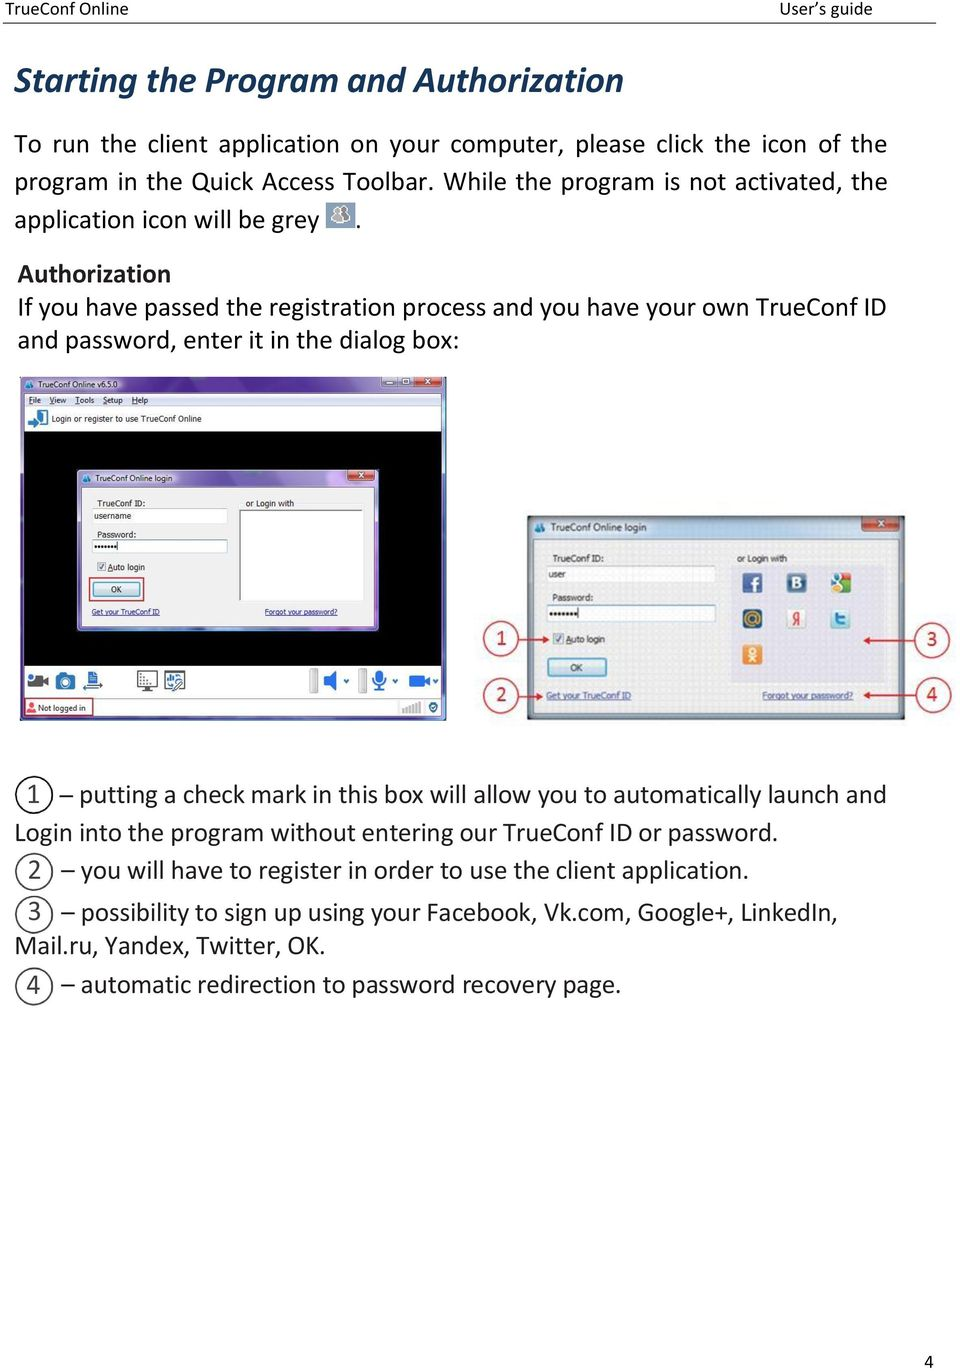 Installing and Configuring TrueConf Online - PDF